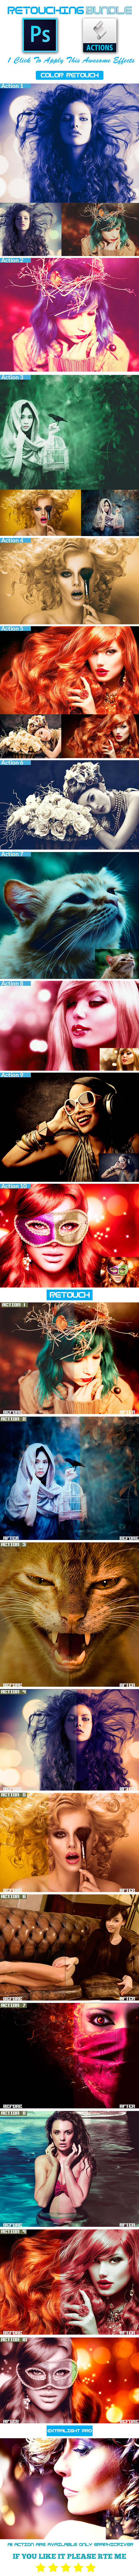 GraphicRiver Retouching Action Bundle 9104201